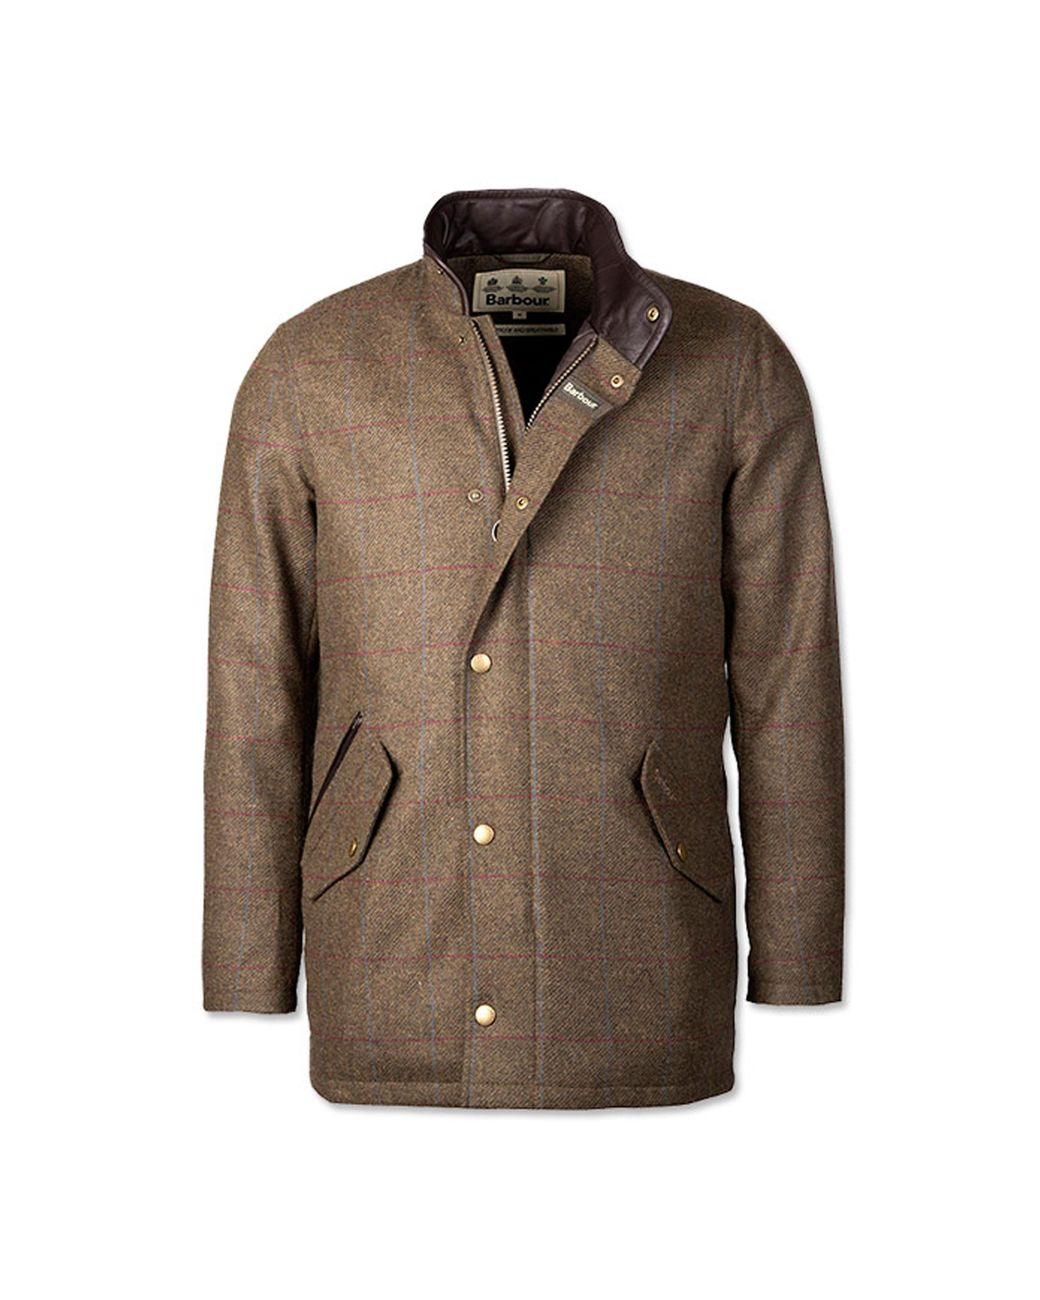 621c08b1b005 Barbour Wimbrel Wool Jacket in Green for Men - Lyst